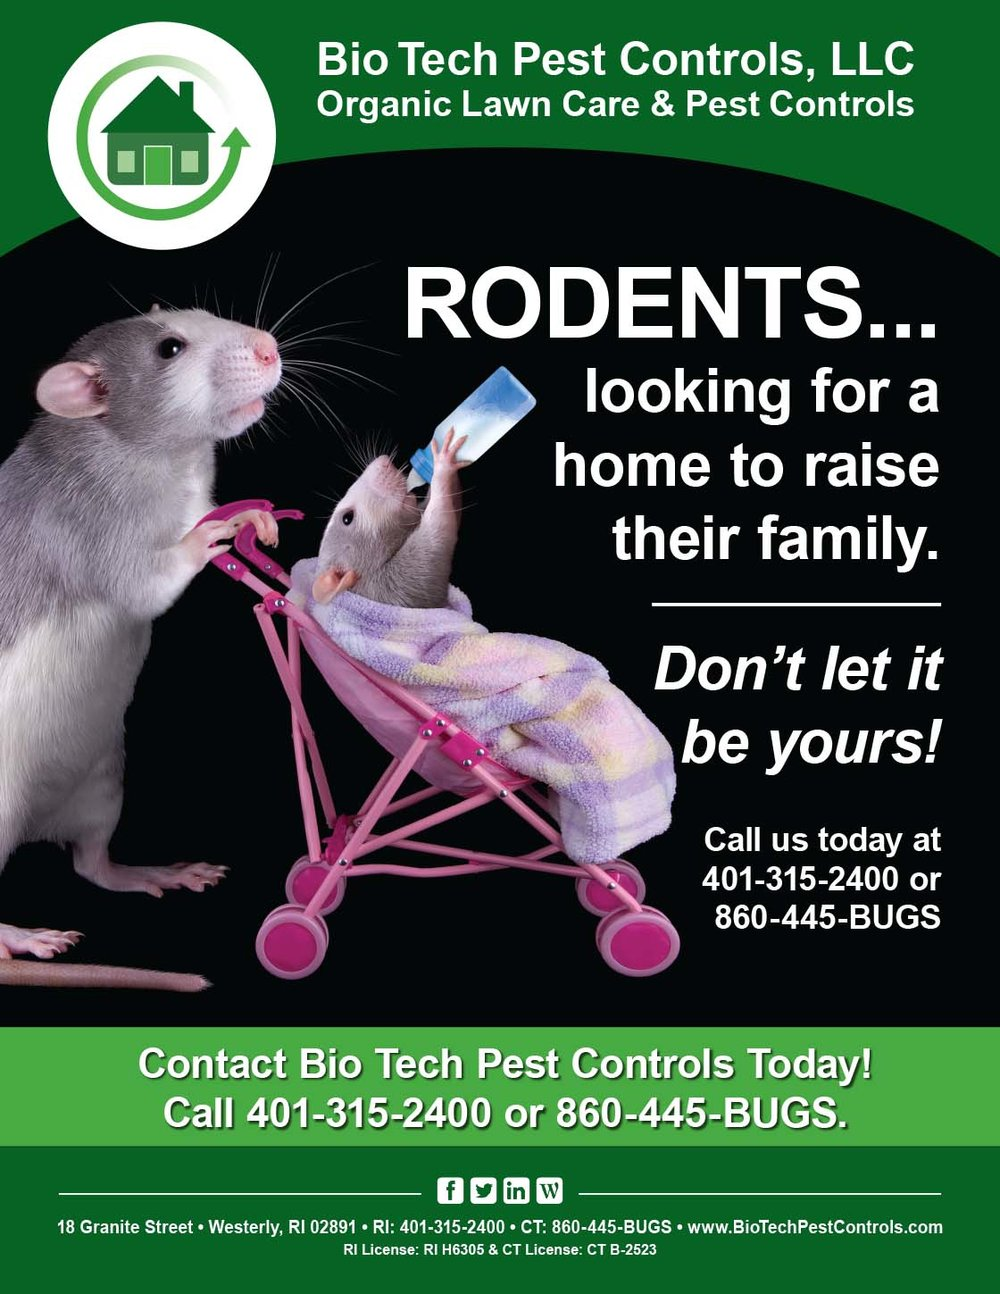 Rodents_Mice_Flyer.jpg